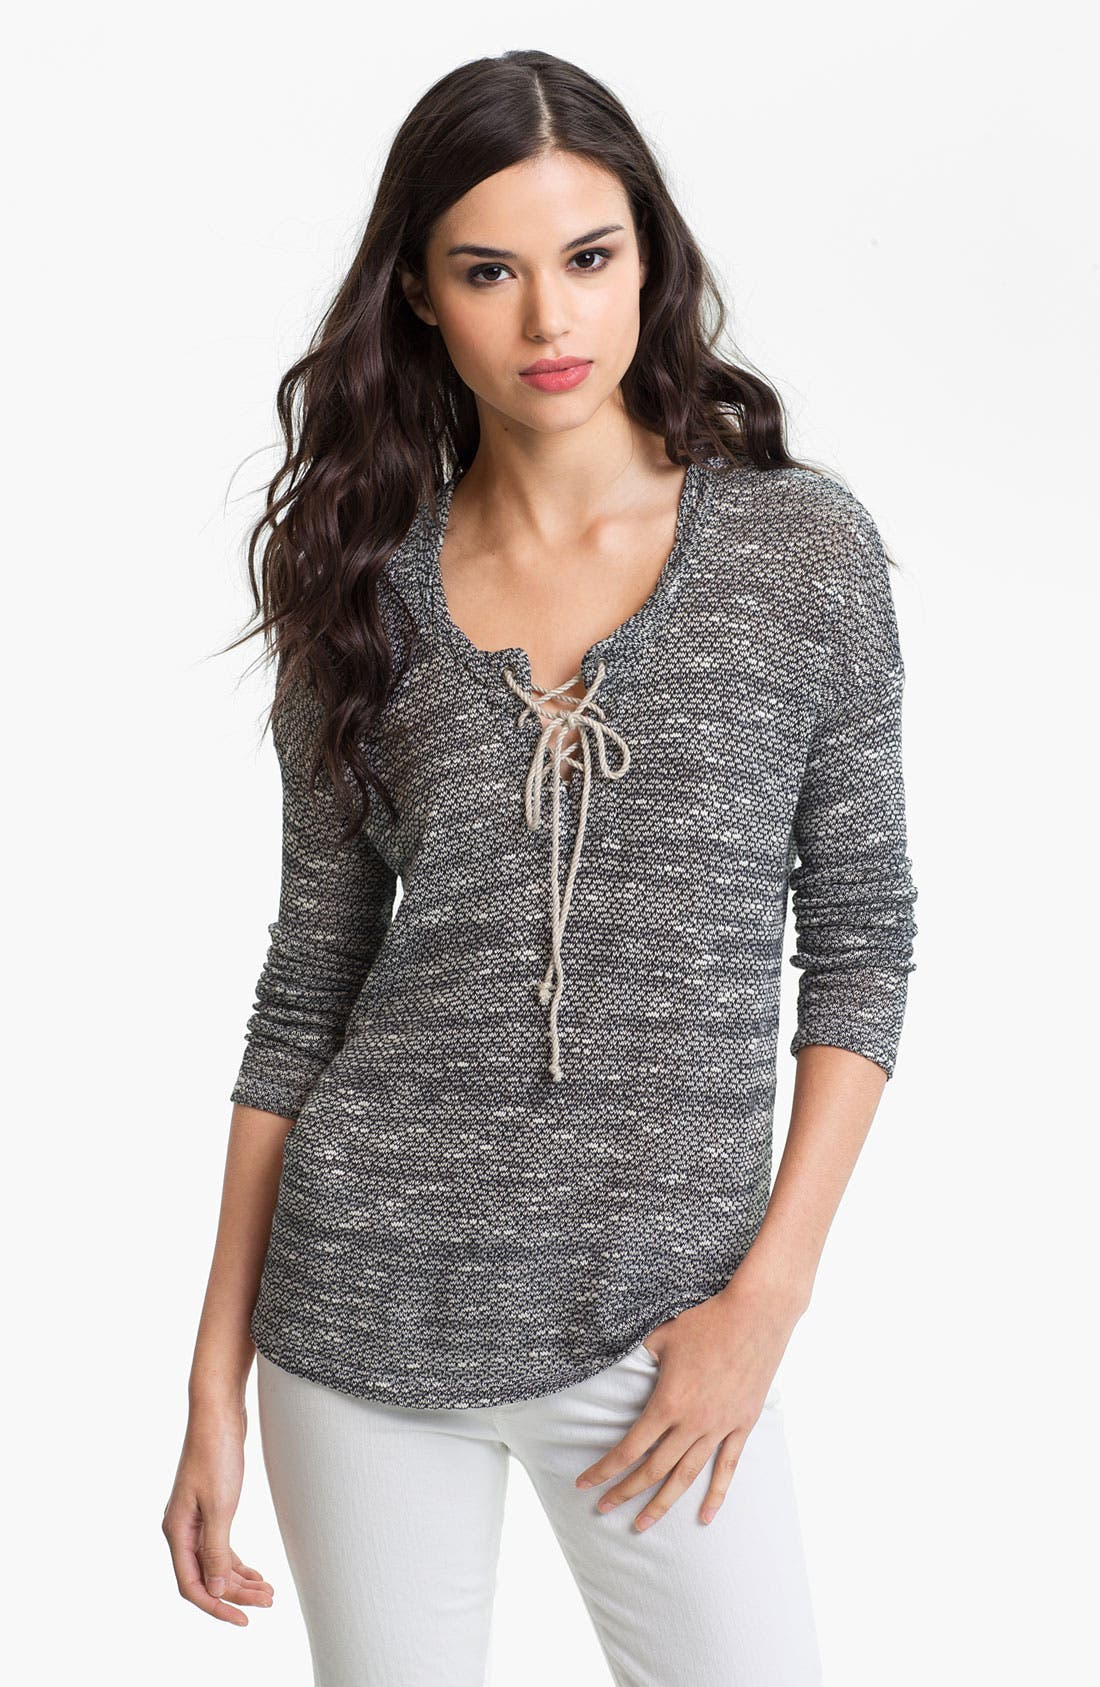 Main Image - Splendid 'Key West' Textured Lace-Up Top